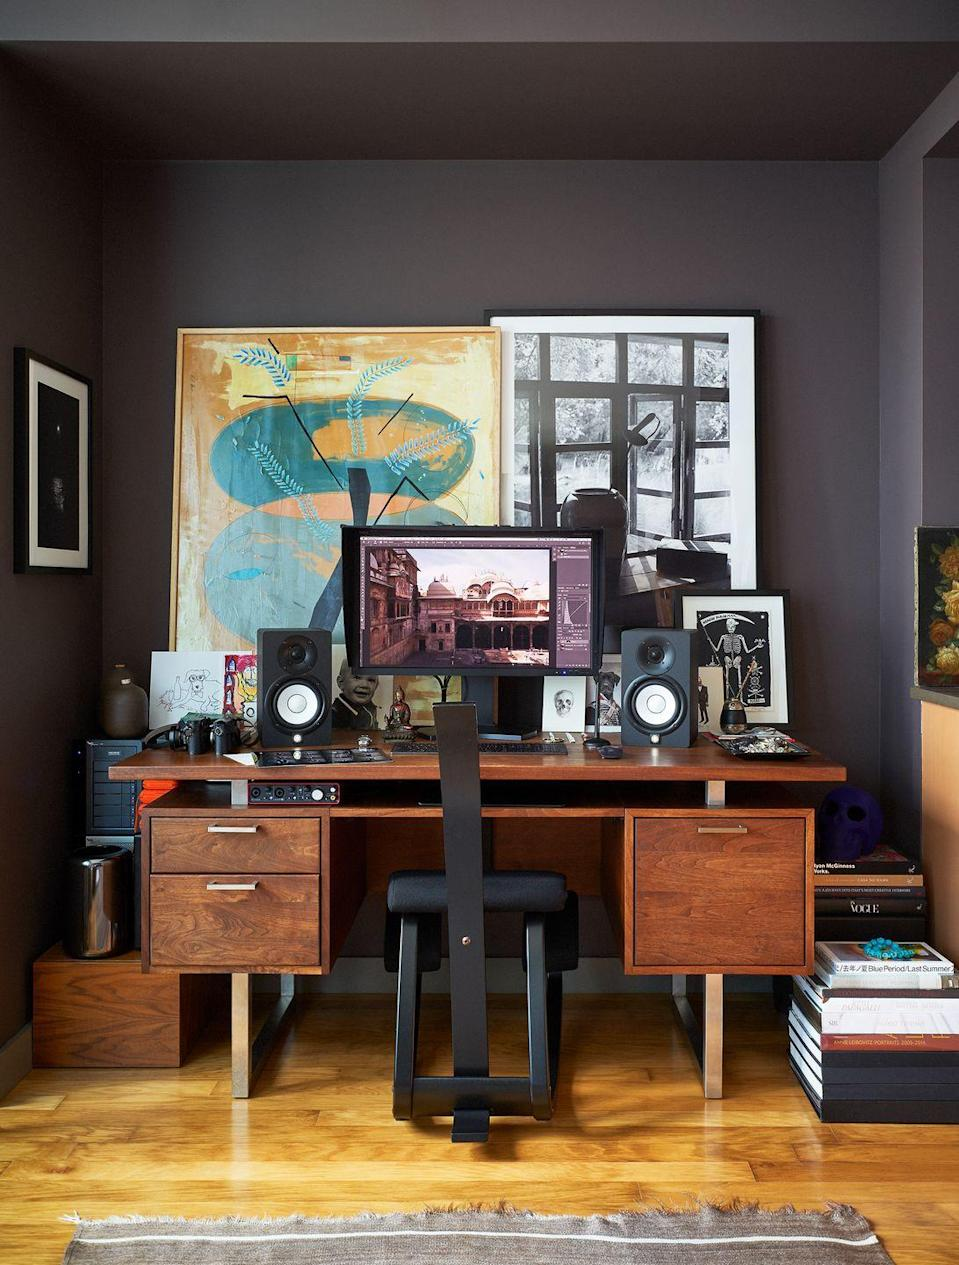 """<p>In photographer <a href=""""https://www.housebeautiful.com/design-inspiration/house-tours/a28071100/bjorn-wallander-manhattan-apartment-tour/"""" rel=""""nofollow noopener"""" target=""""_blank"""" data-ylk=""""slk:Bjorn Wallander's"""" class=""""link rapid-noclick-resp"""">Bjorn Wallander's</a> New York City apartment, the work nook balances a moody espresso backdrop with bright bursts in the artwork and books for inspiration. And don't forget to add speakers (with your housemates' permission, of course).</p>"""